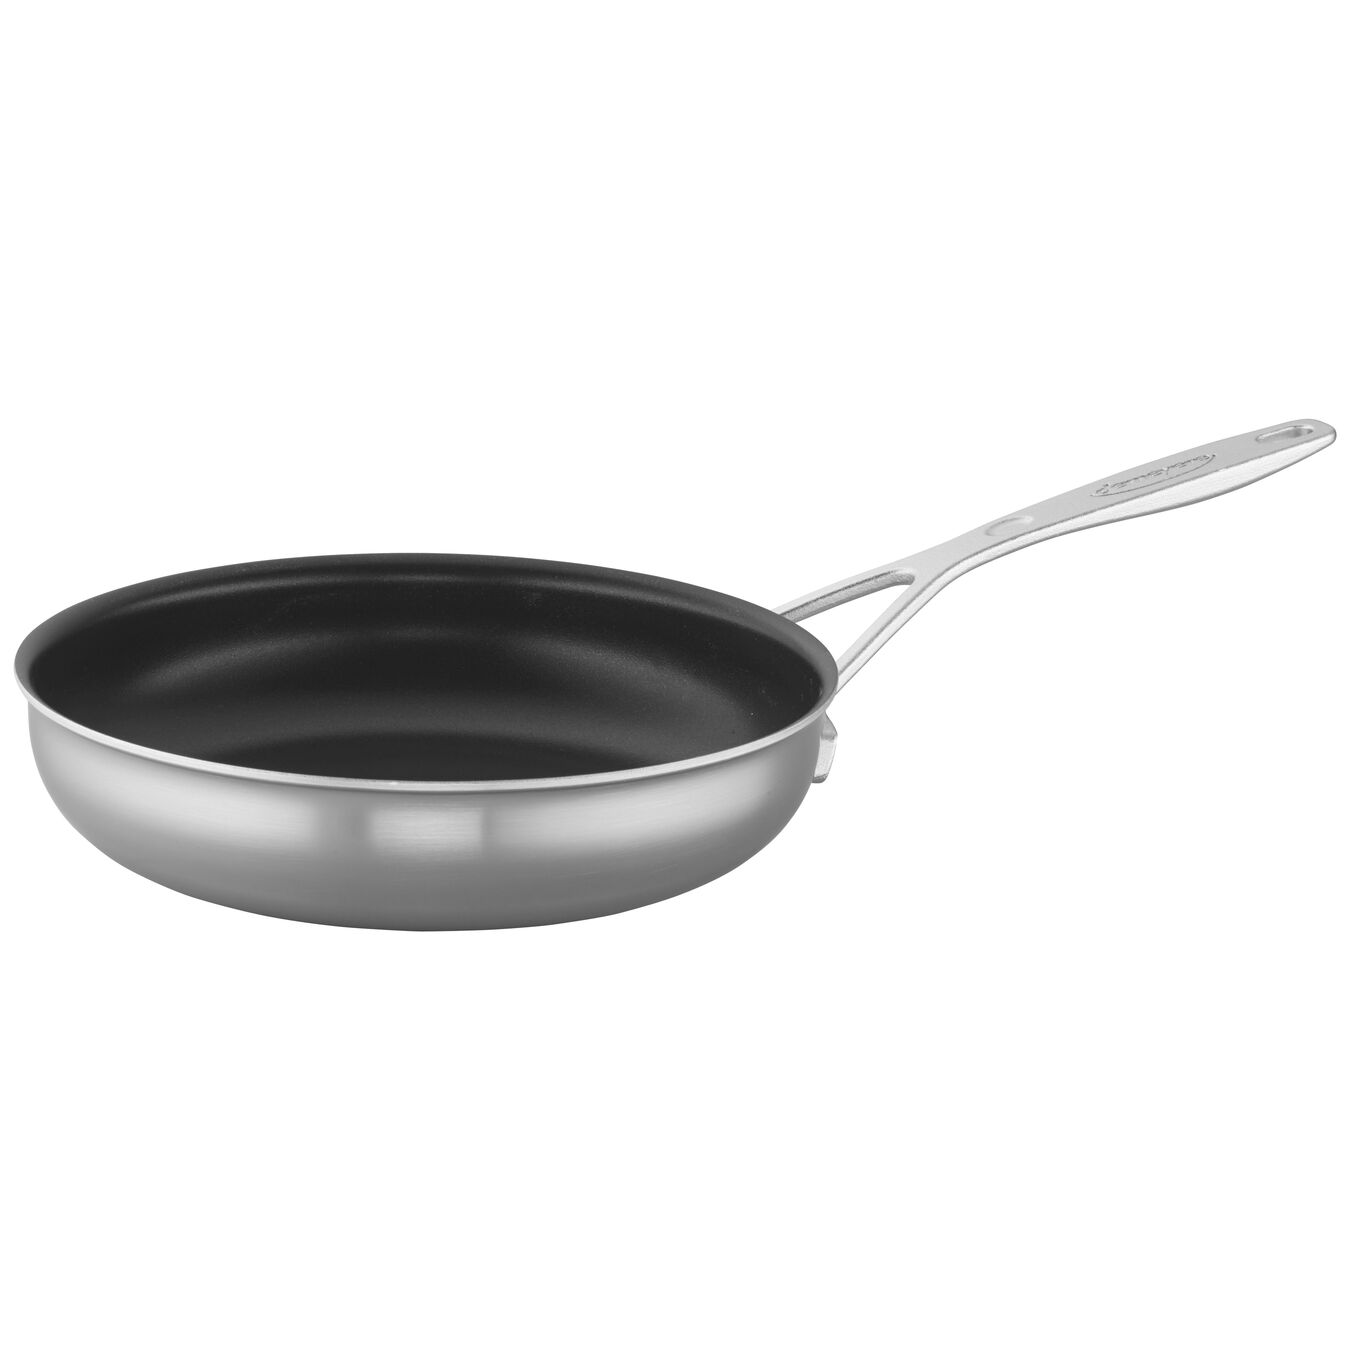 9.5-inch, 18/10 Stainless Steel, Non-stick, PTFE, Frying pan,,large 4